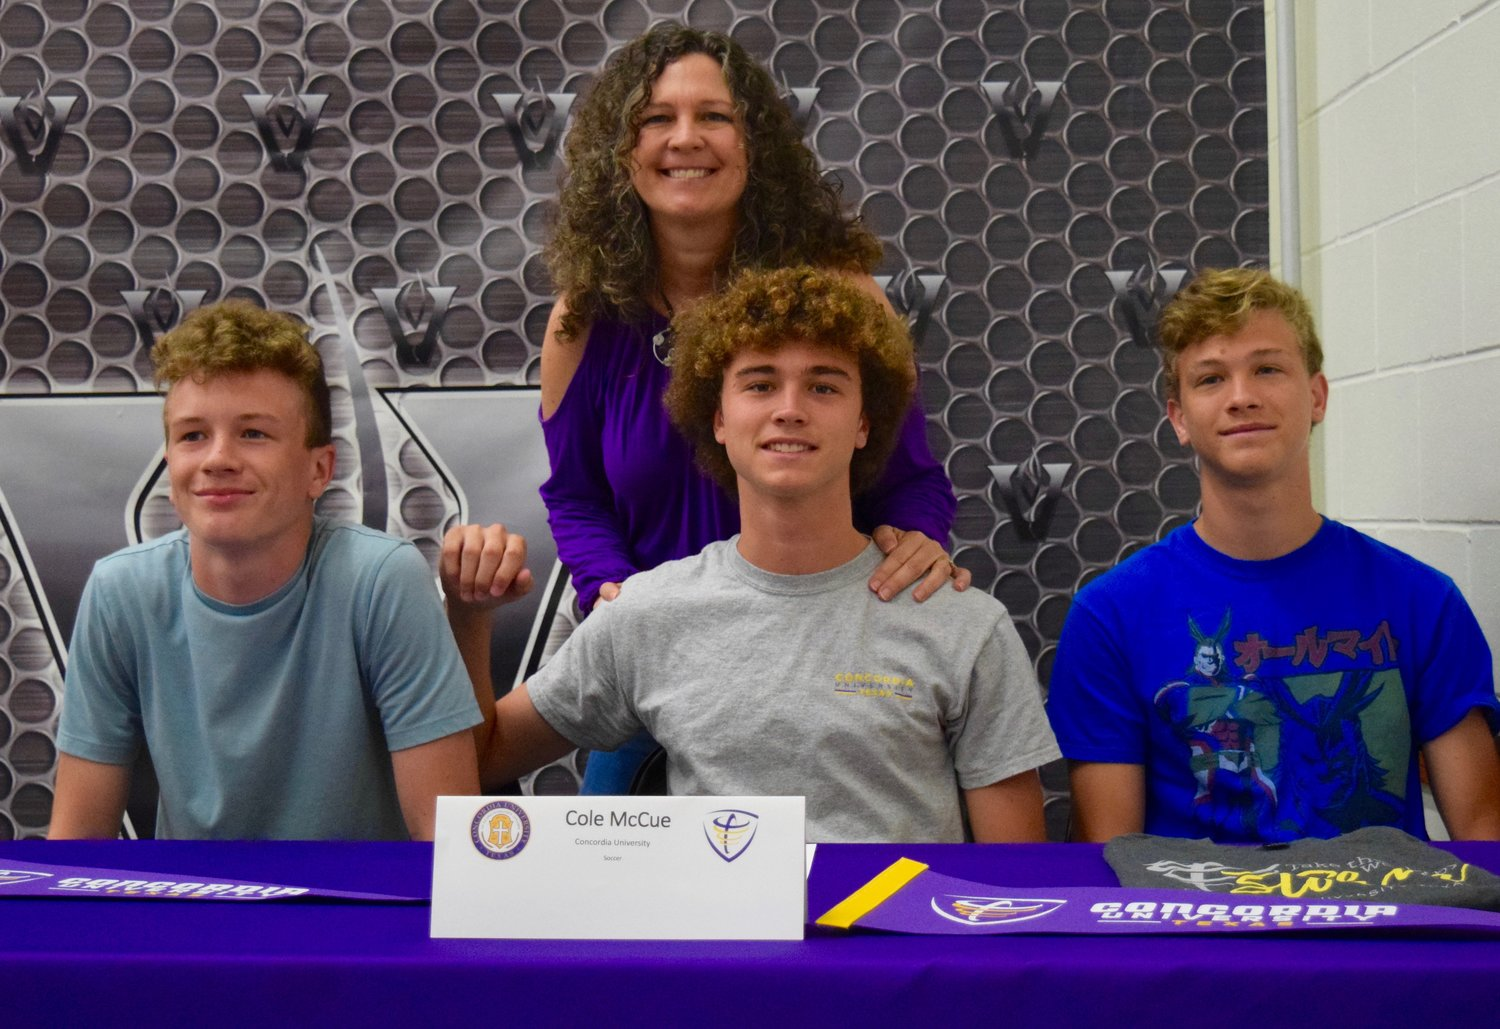 Cole McCue signed to play soccer at Concordia University at a ceremony Tuesday morning at Vandegrift High School.